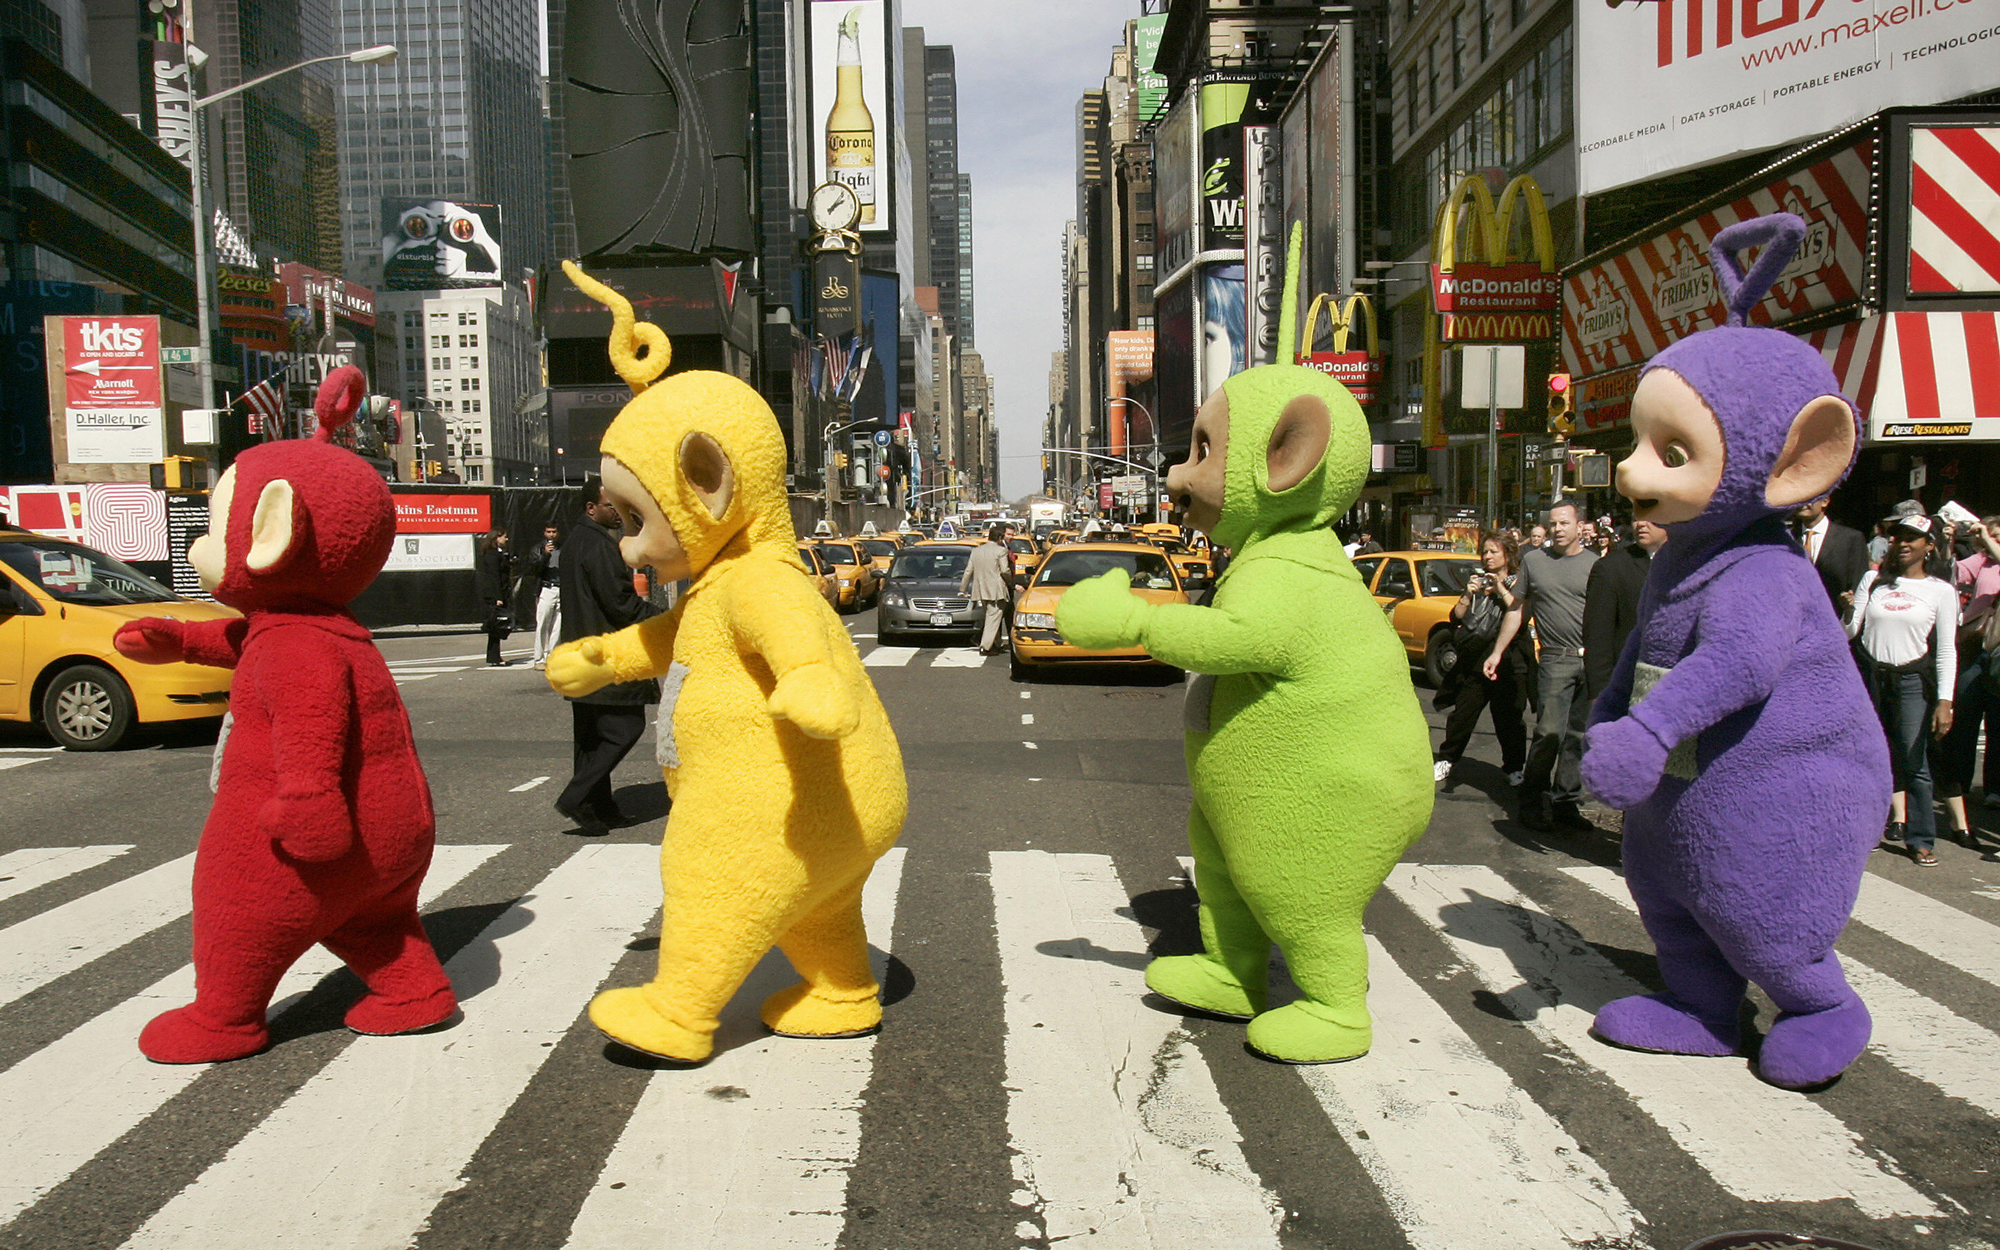 Times Square is Creating Color-Coded Zones to Organize Street Performers